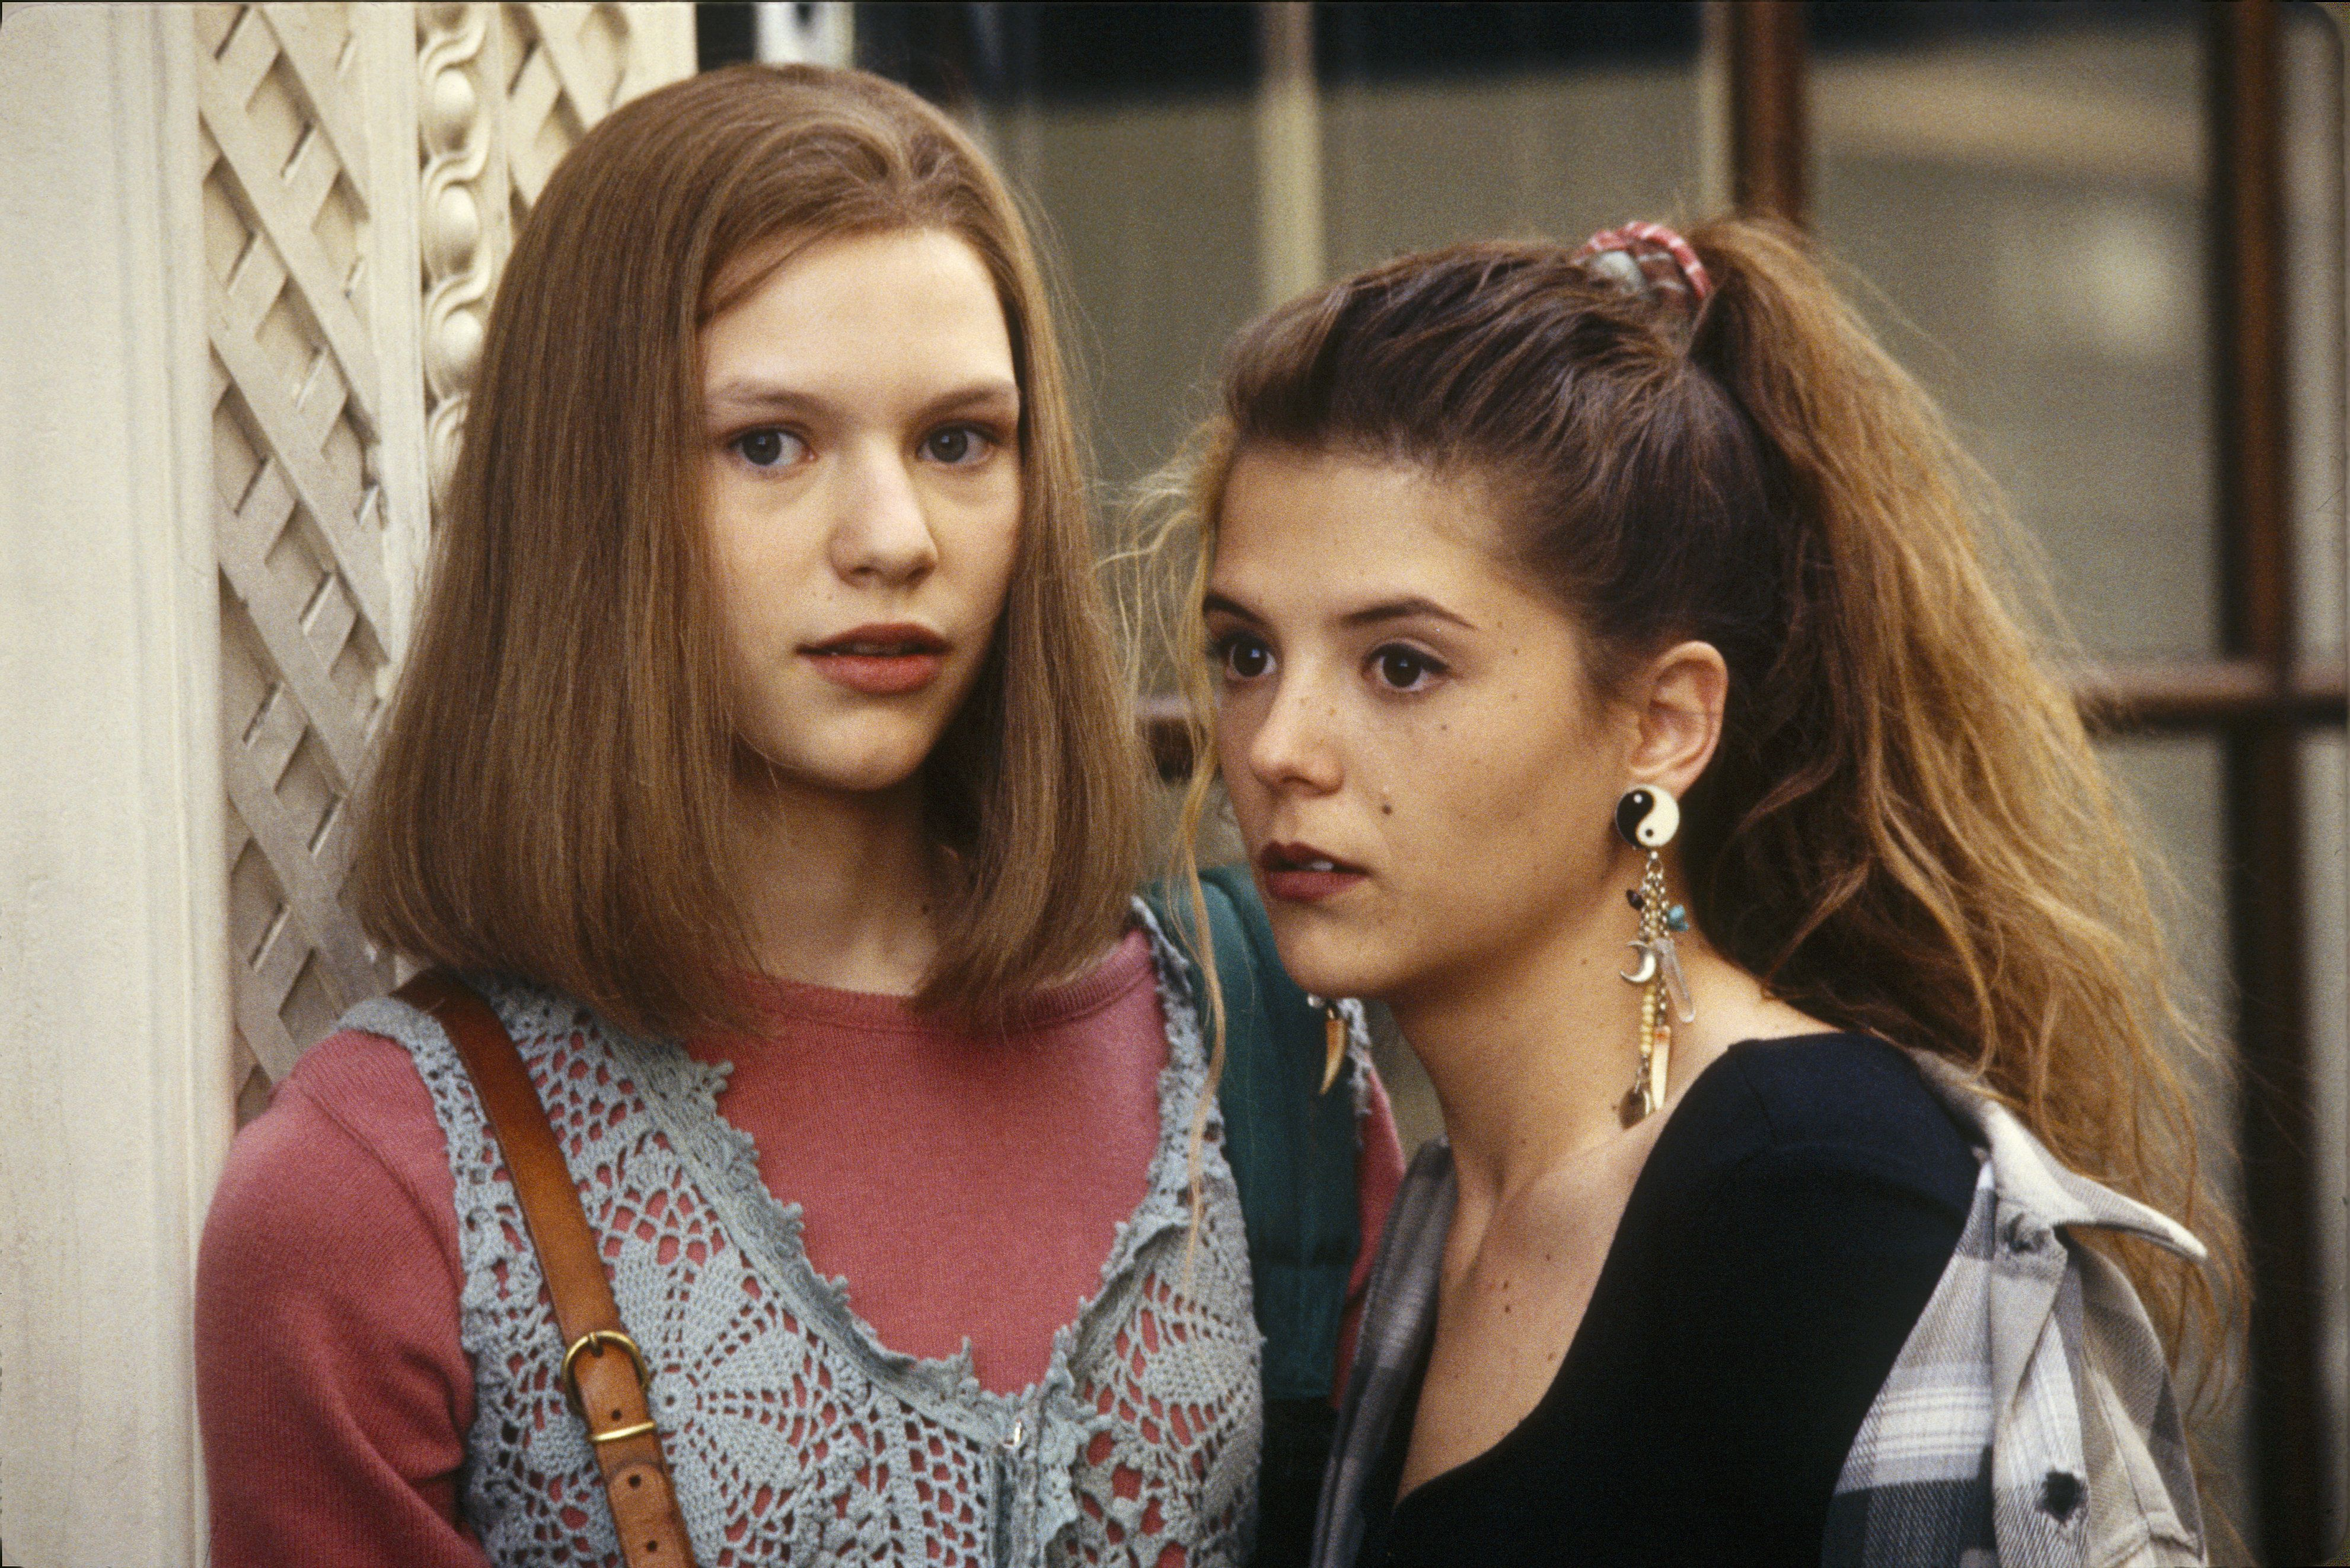 UNITED STATES - AUGUST 25:  MY SO-CALLED LIFE - pilot - 8/25/94, Claire Danes (left) played Angela Chase, a 15-year-old who wanted to break out of the mold as a strait-laced teen-ager and straight-A student. A.J. Langer (Rayanne Graff) also stars.,  (Photo by ABC Photo Archives/ABC via Getty Images)